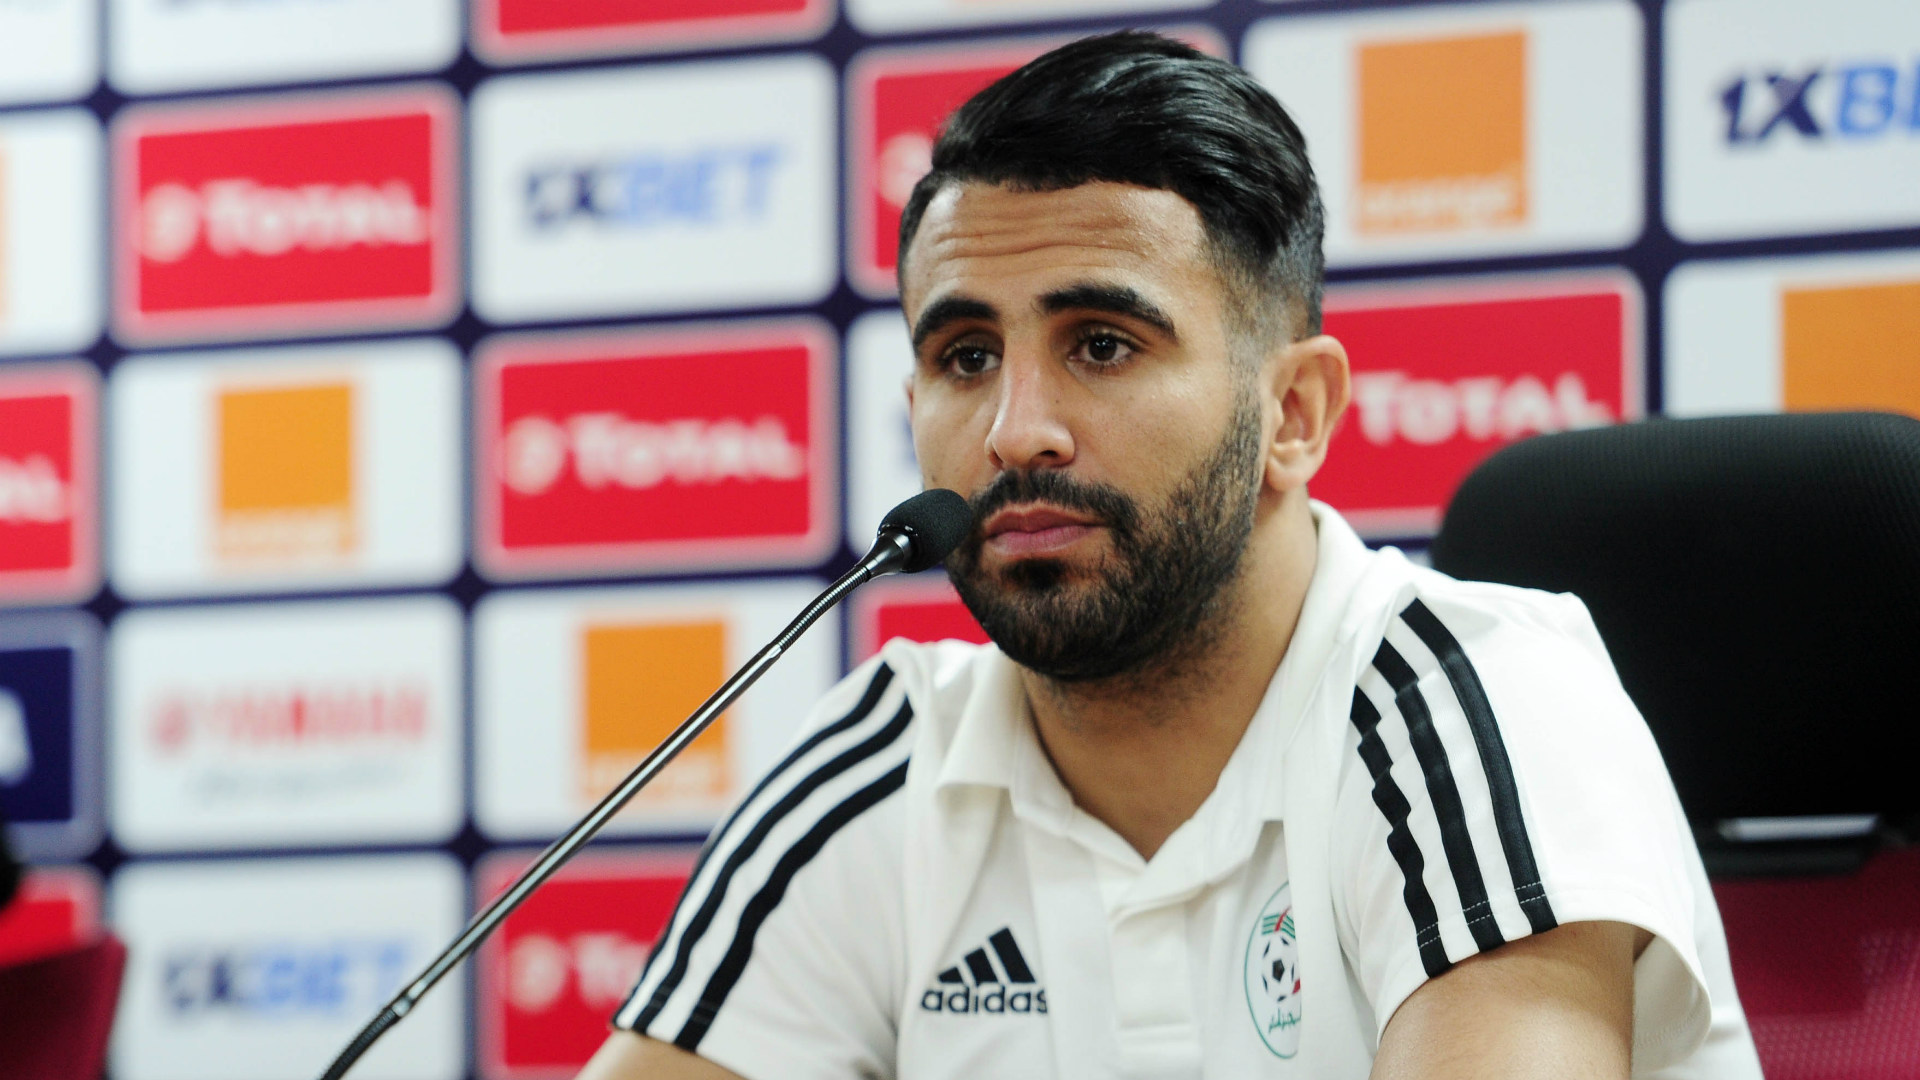 Afcon 2019: Algeria captain Riyad Mahrez anticipates tough clash with Nigeria